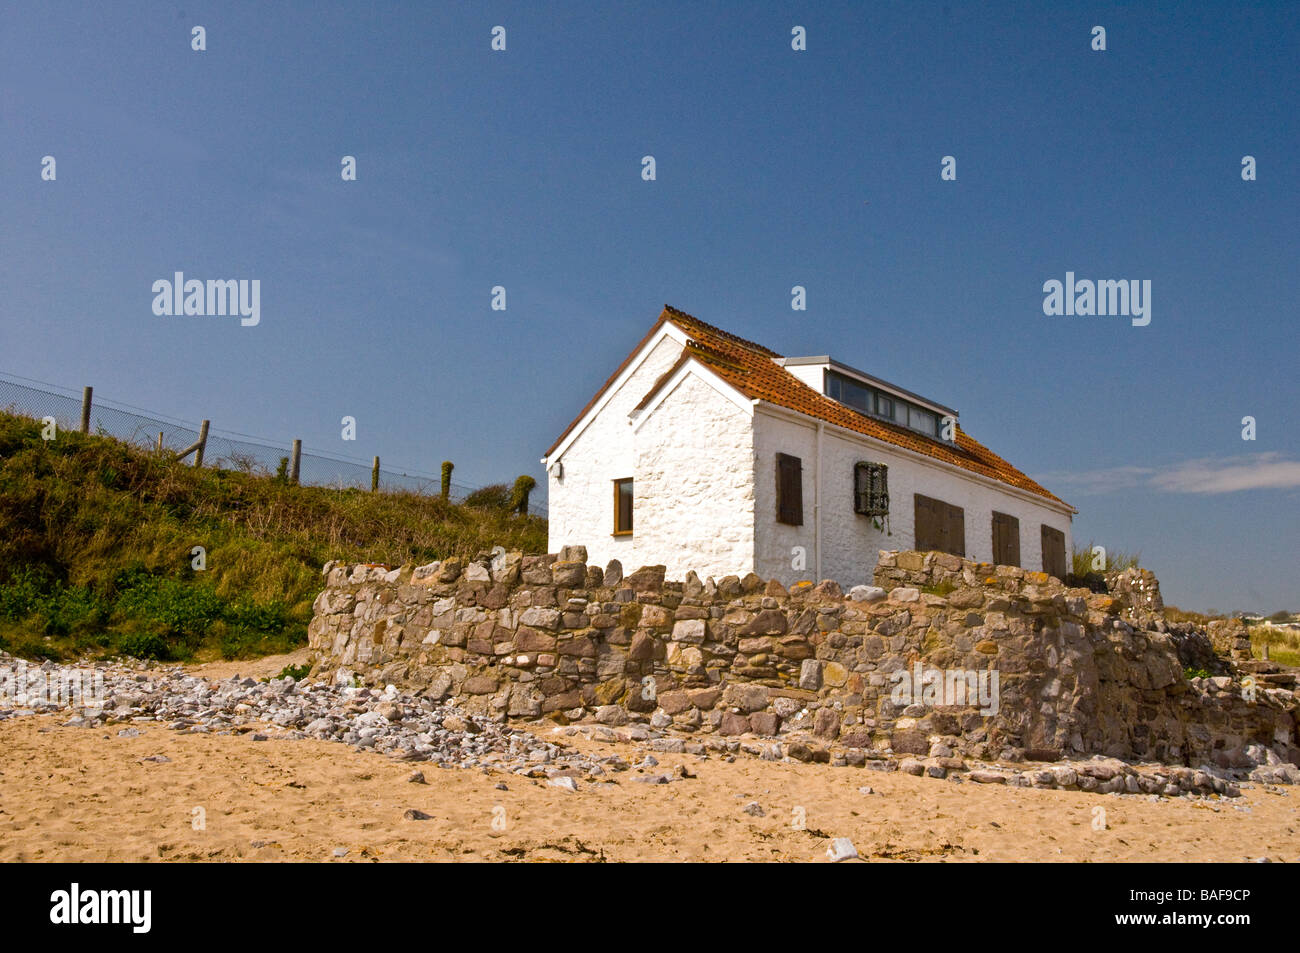 The old fisherman 39 s cottage at port eynon beach on the gower stock photo royalty free image - The fishermans cottage ...